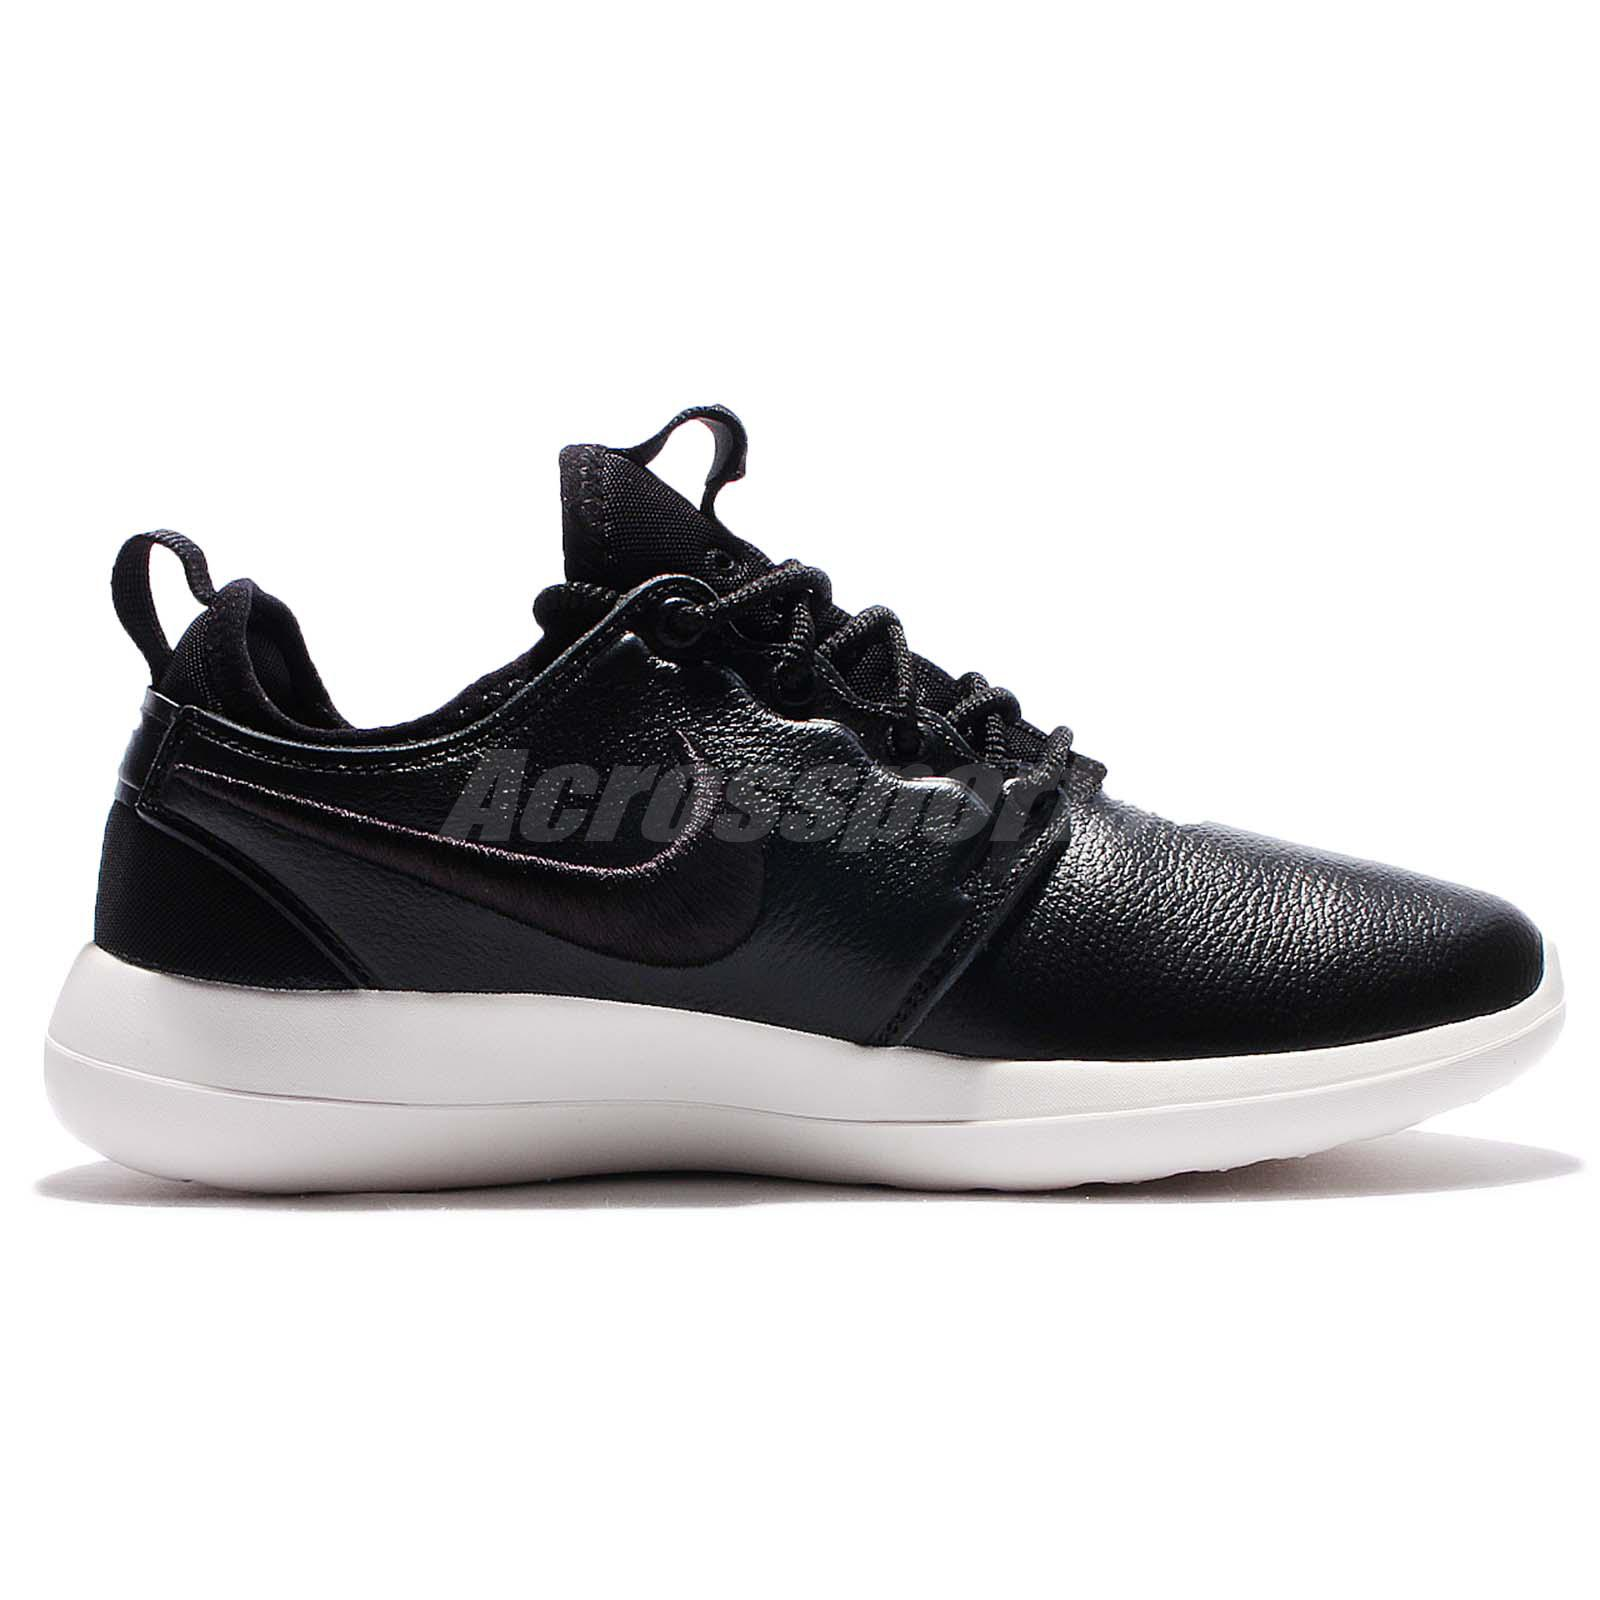 5155e96ca3e3c Nike Roshe Two Si Sneaker in Black Lyst Roshe Two Flyknit